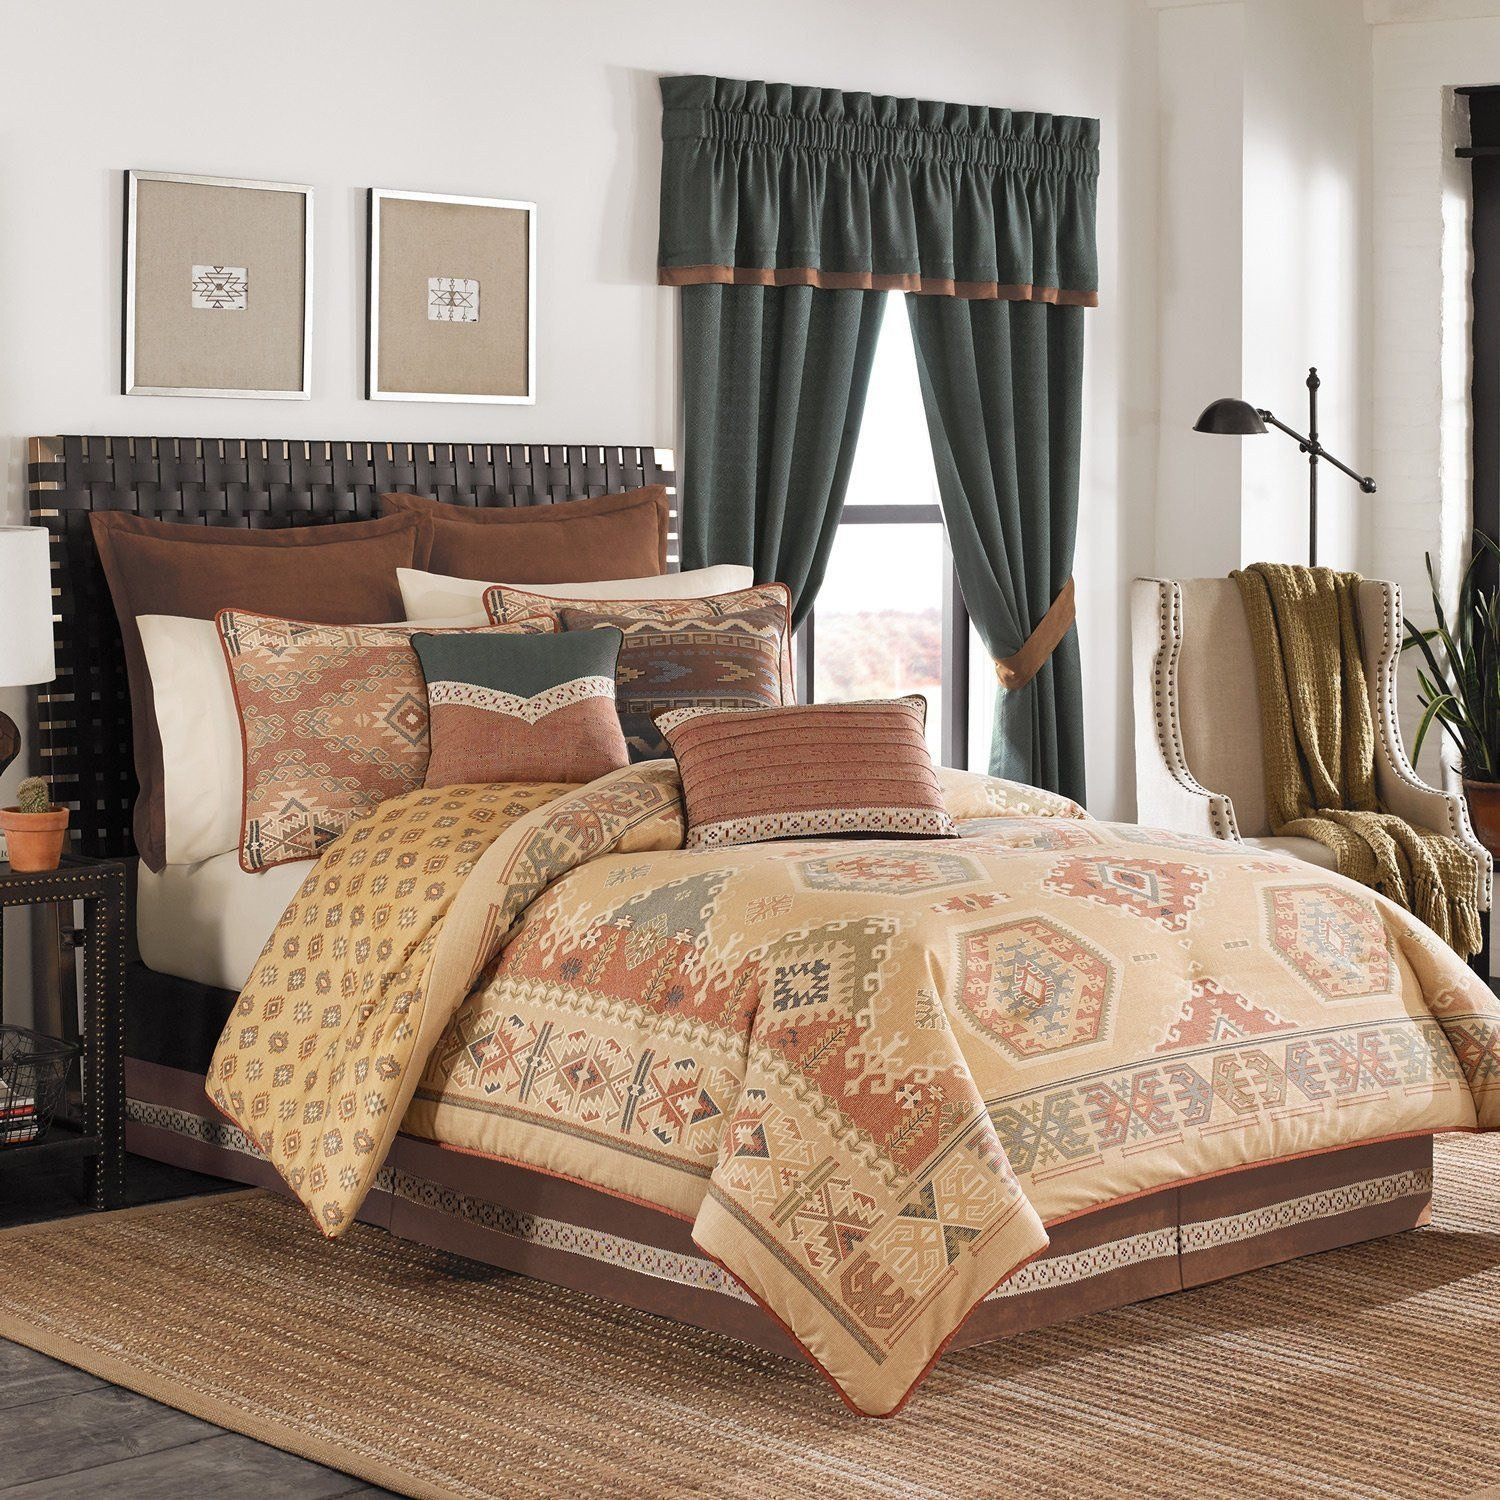 bedding geometric and style basic daring piece ideal rust comforter larsen southwestern shades contrast of stripes taupe is comforters in southwest an smoky set patterns